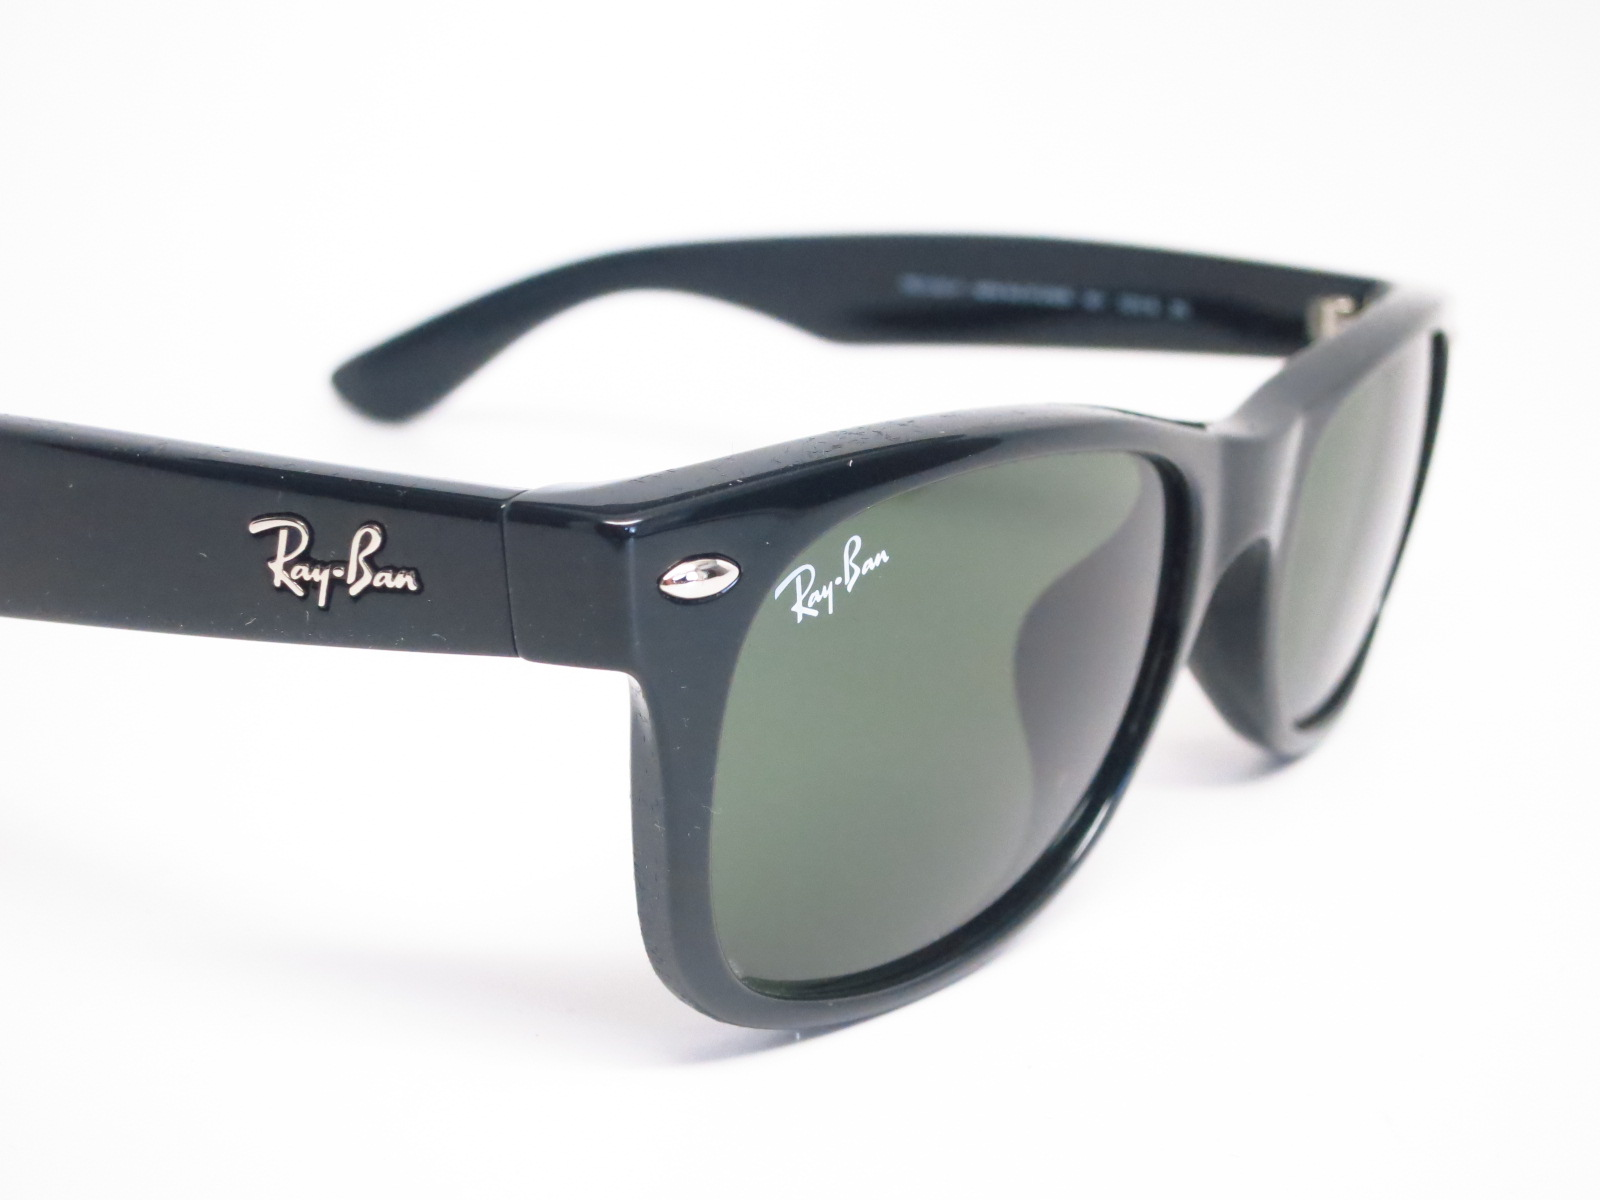 b0527237b94 Ray-Bans for Small Faces